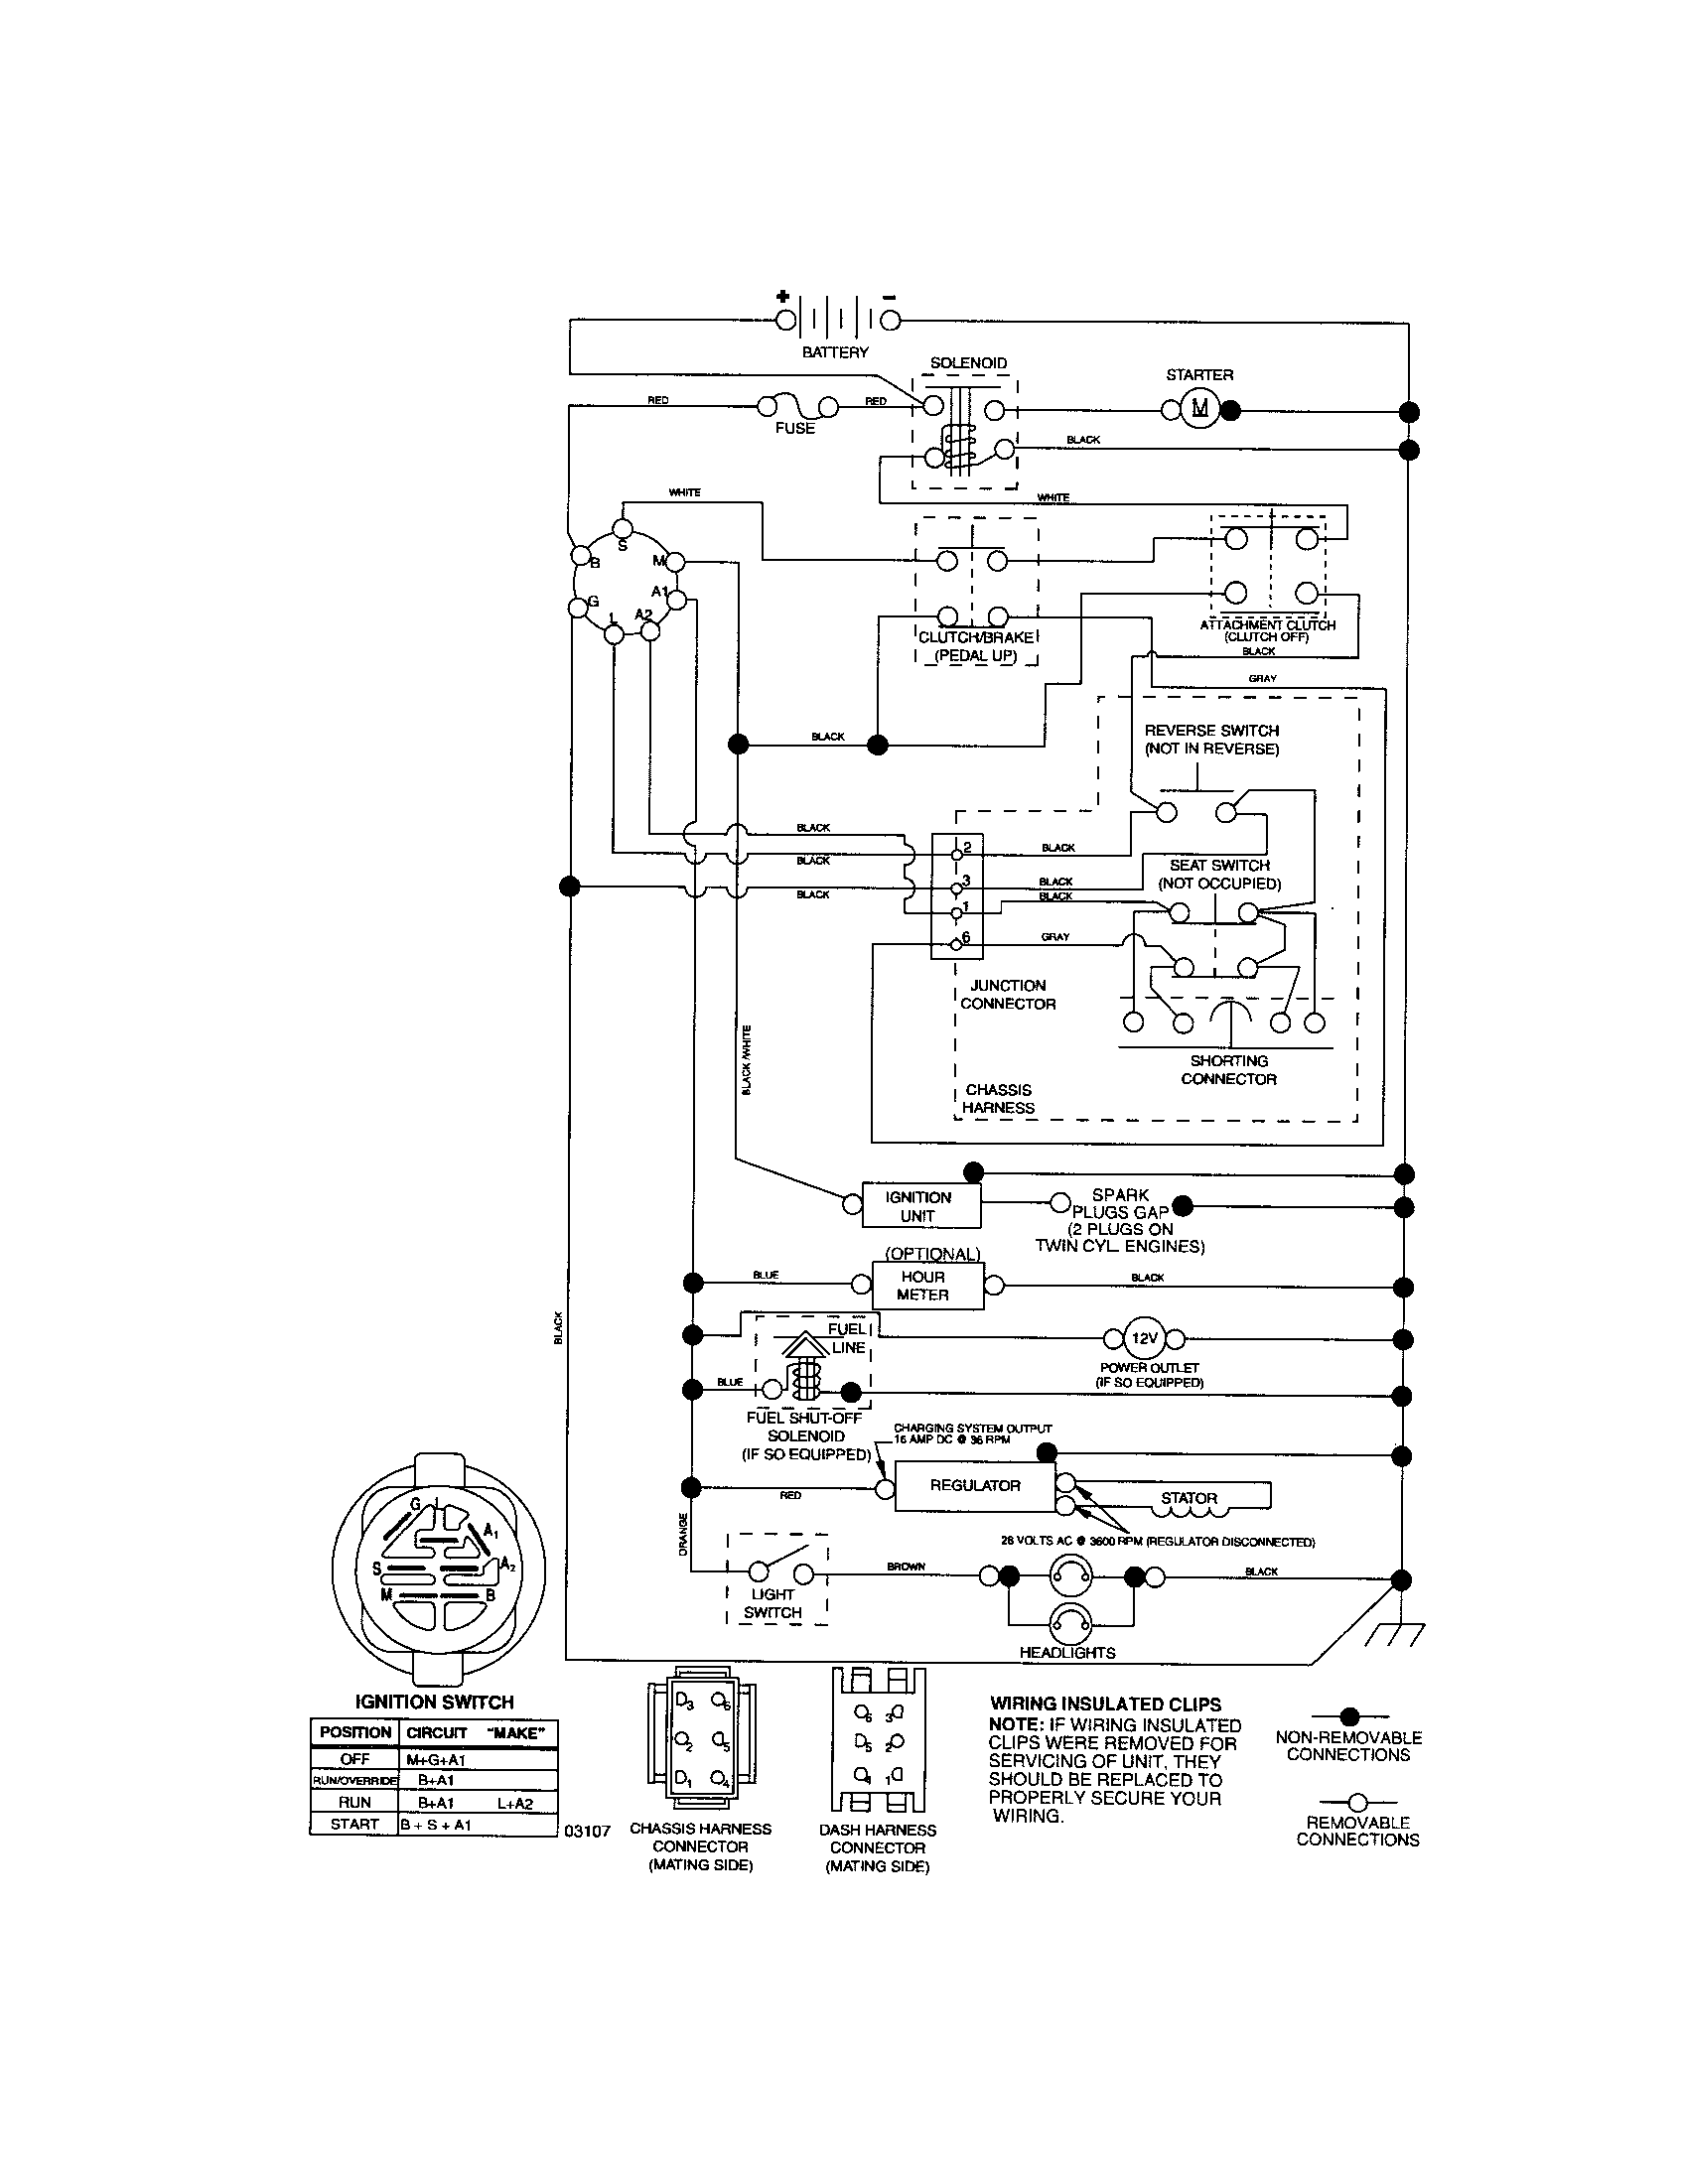 Toro Lawn Mower Wiring Diagram Just Data Magneto Craftsman Riding Electrical Timecutter Drive Belt